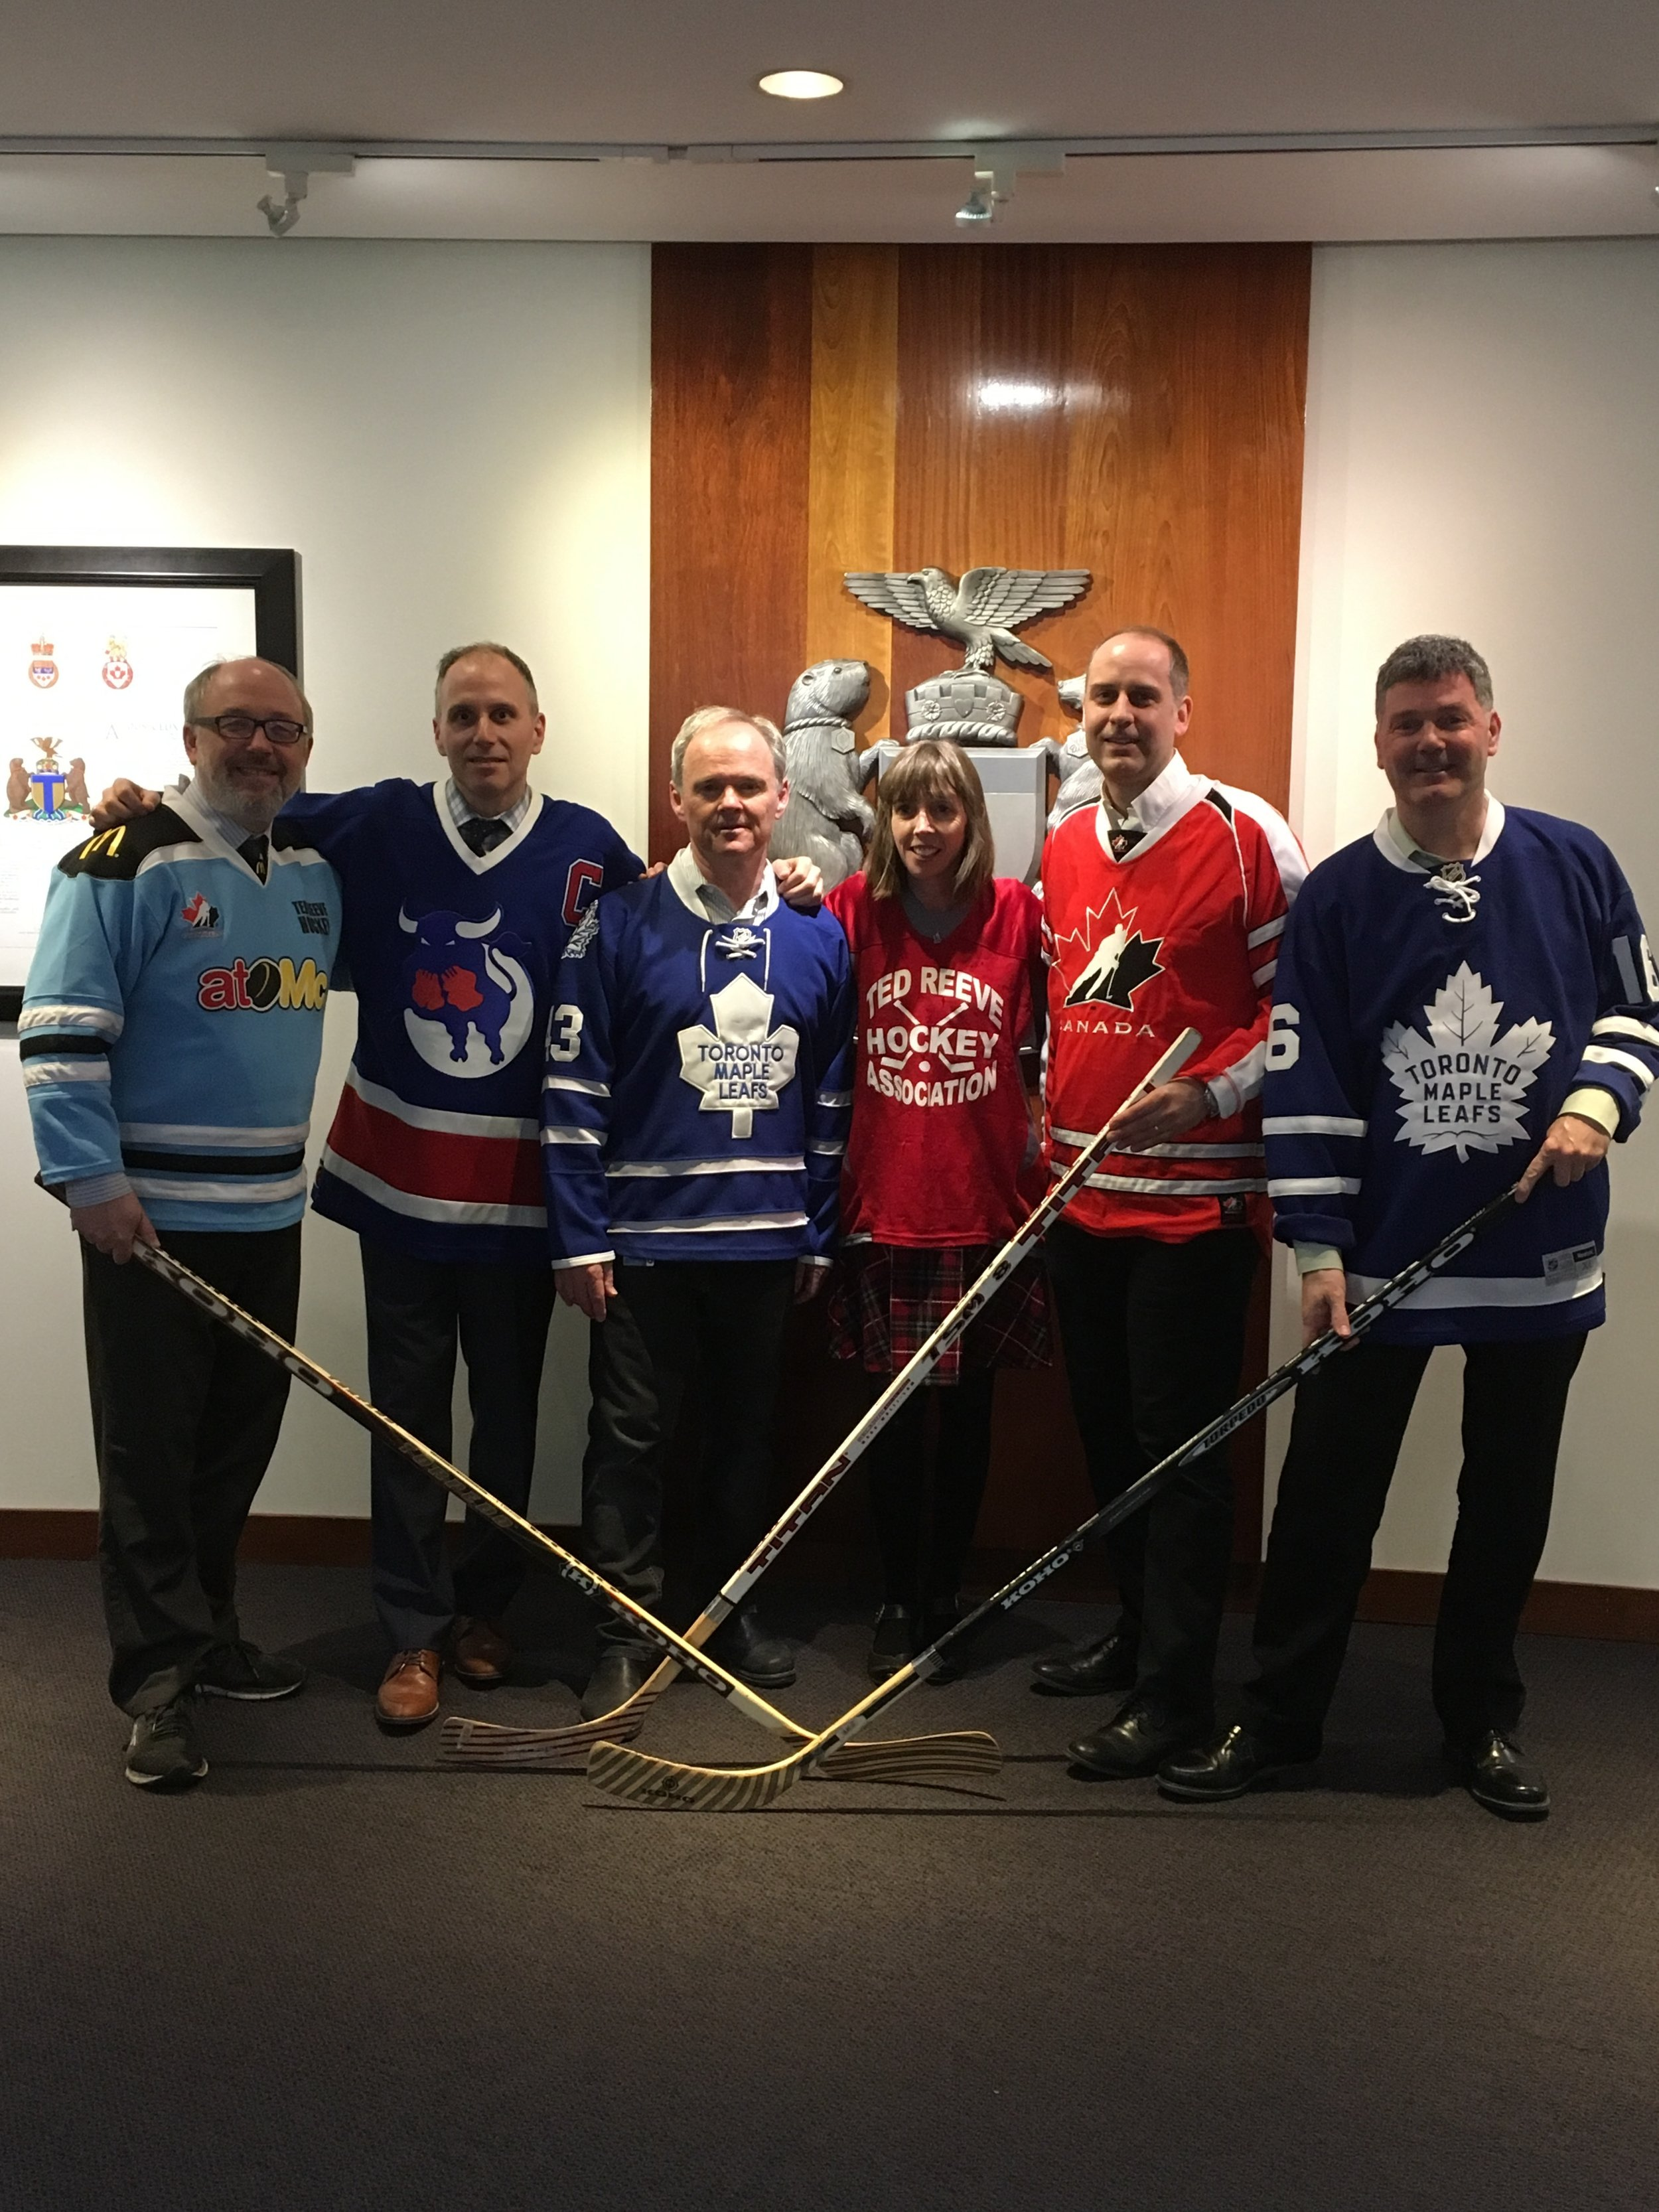 City councillors wear hockey jerseys in honour of the Humboldt Broncos L-R: Joe Mihevc, Josh Colle, John Campbell, Mary Margaret McMahon, Stephen Holyday and Glenn De Baeremaeker